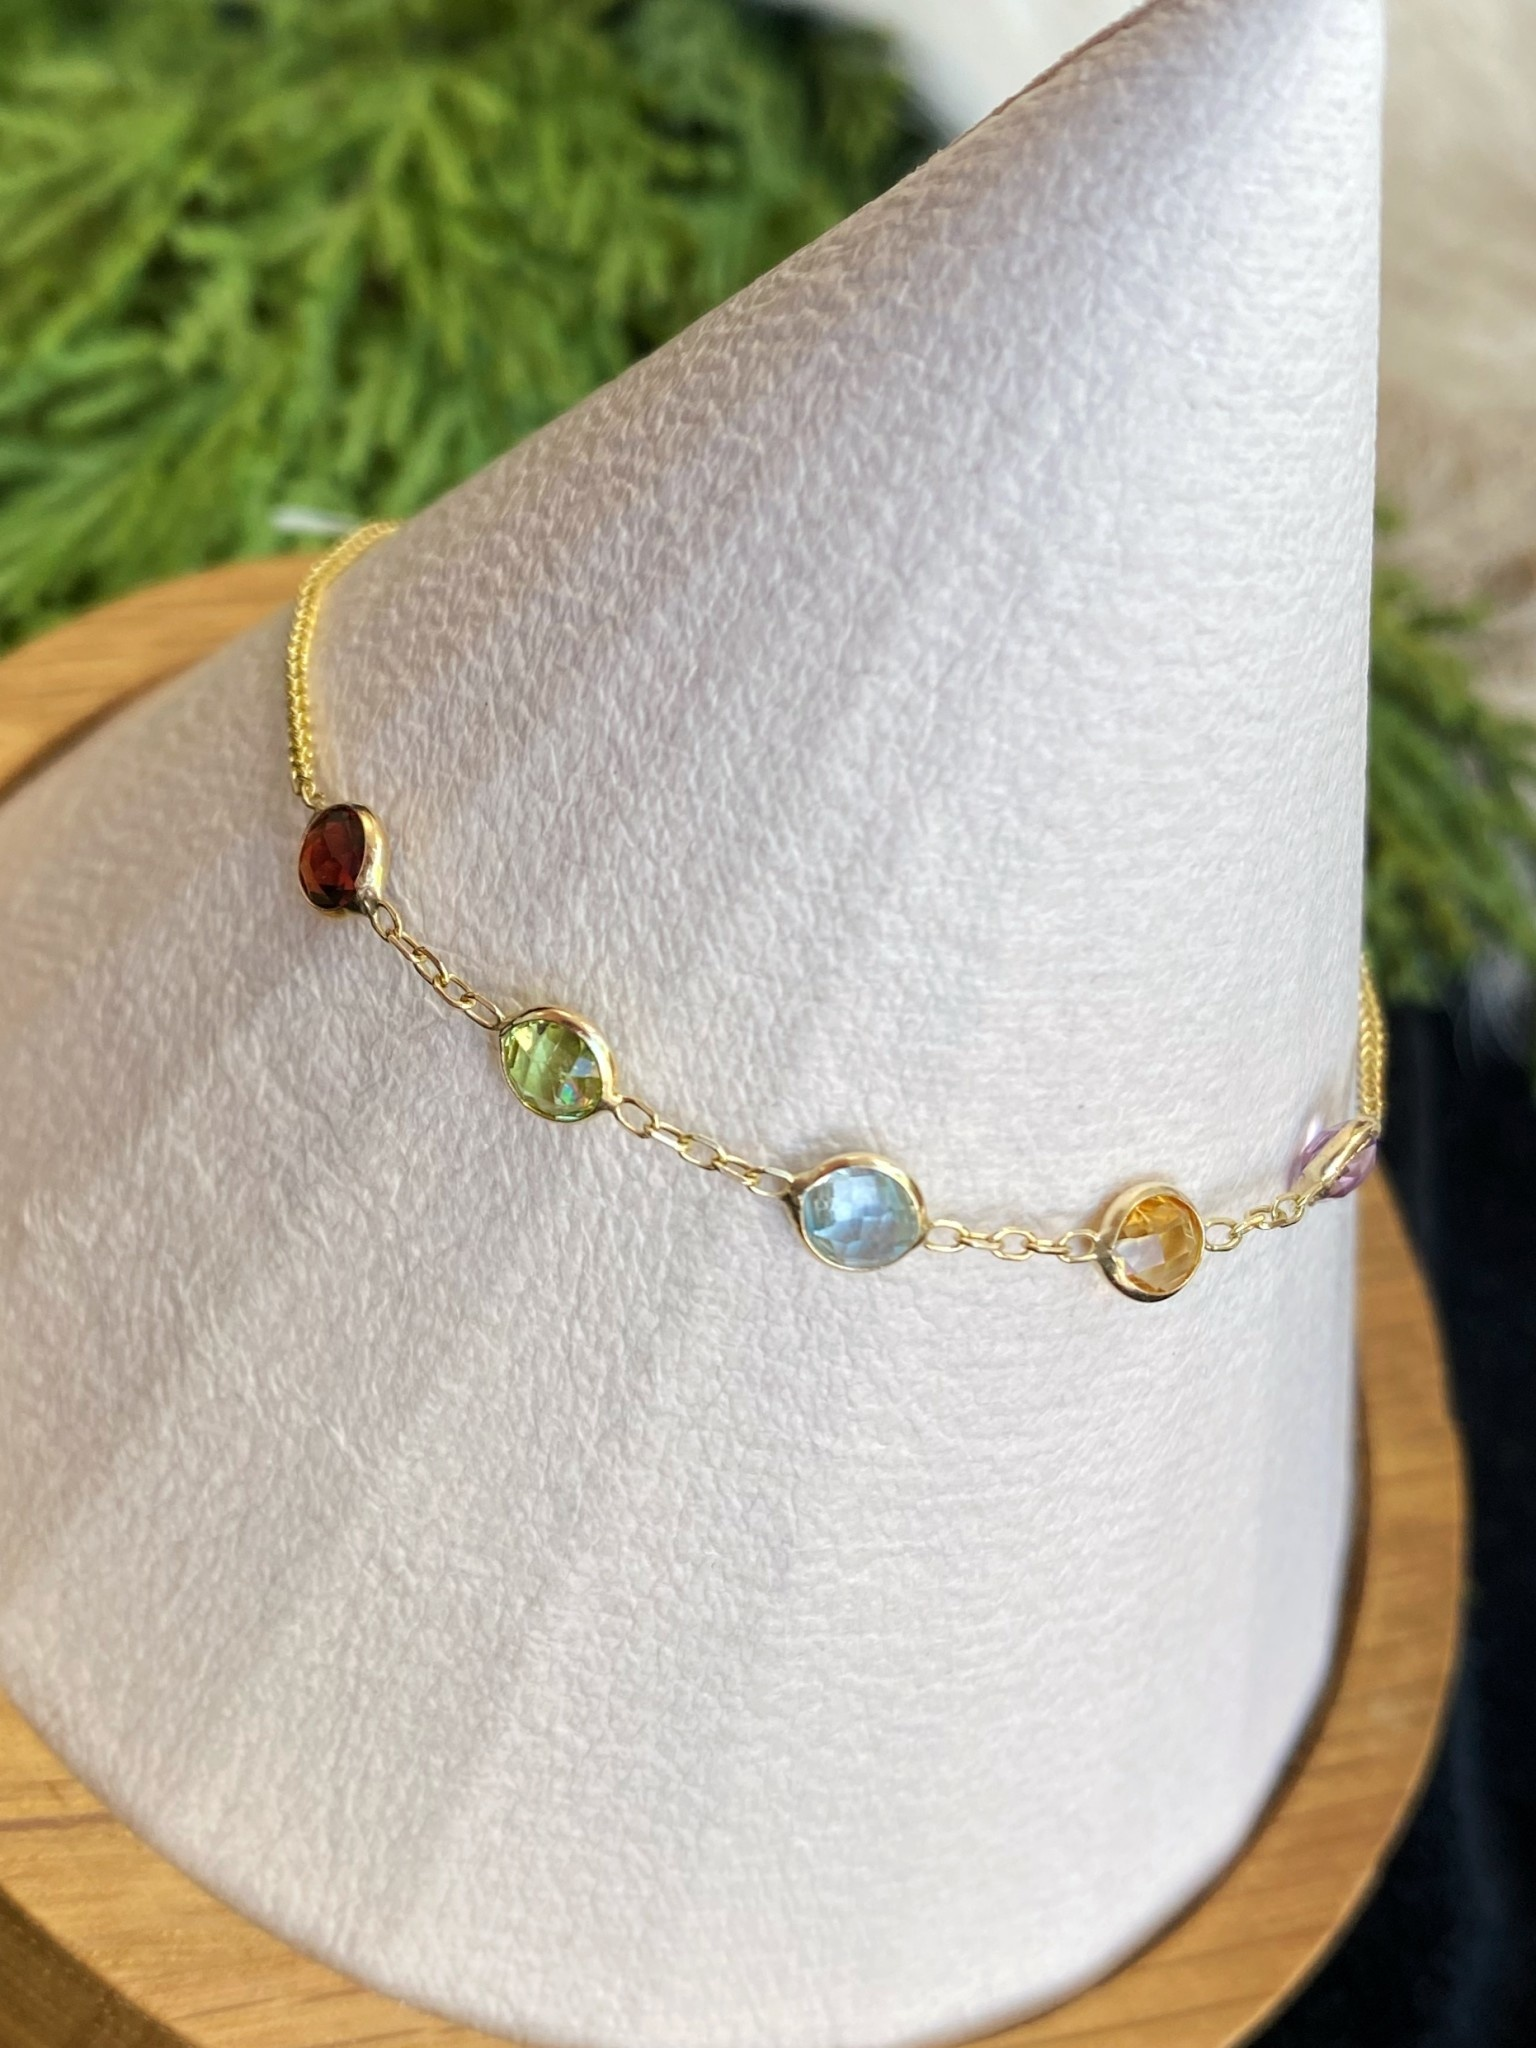 14K Yellow Gold Multi-colored Stone Bracelet